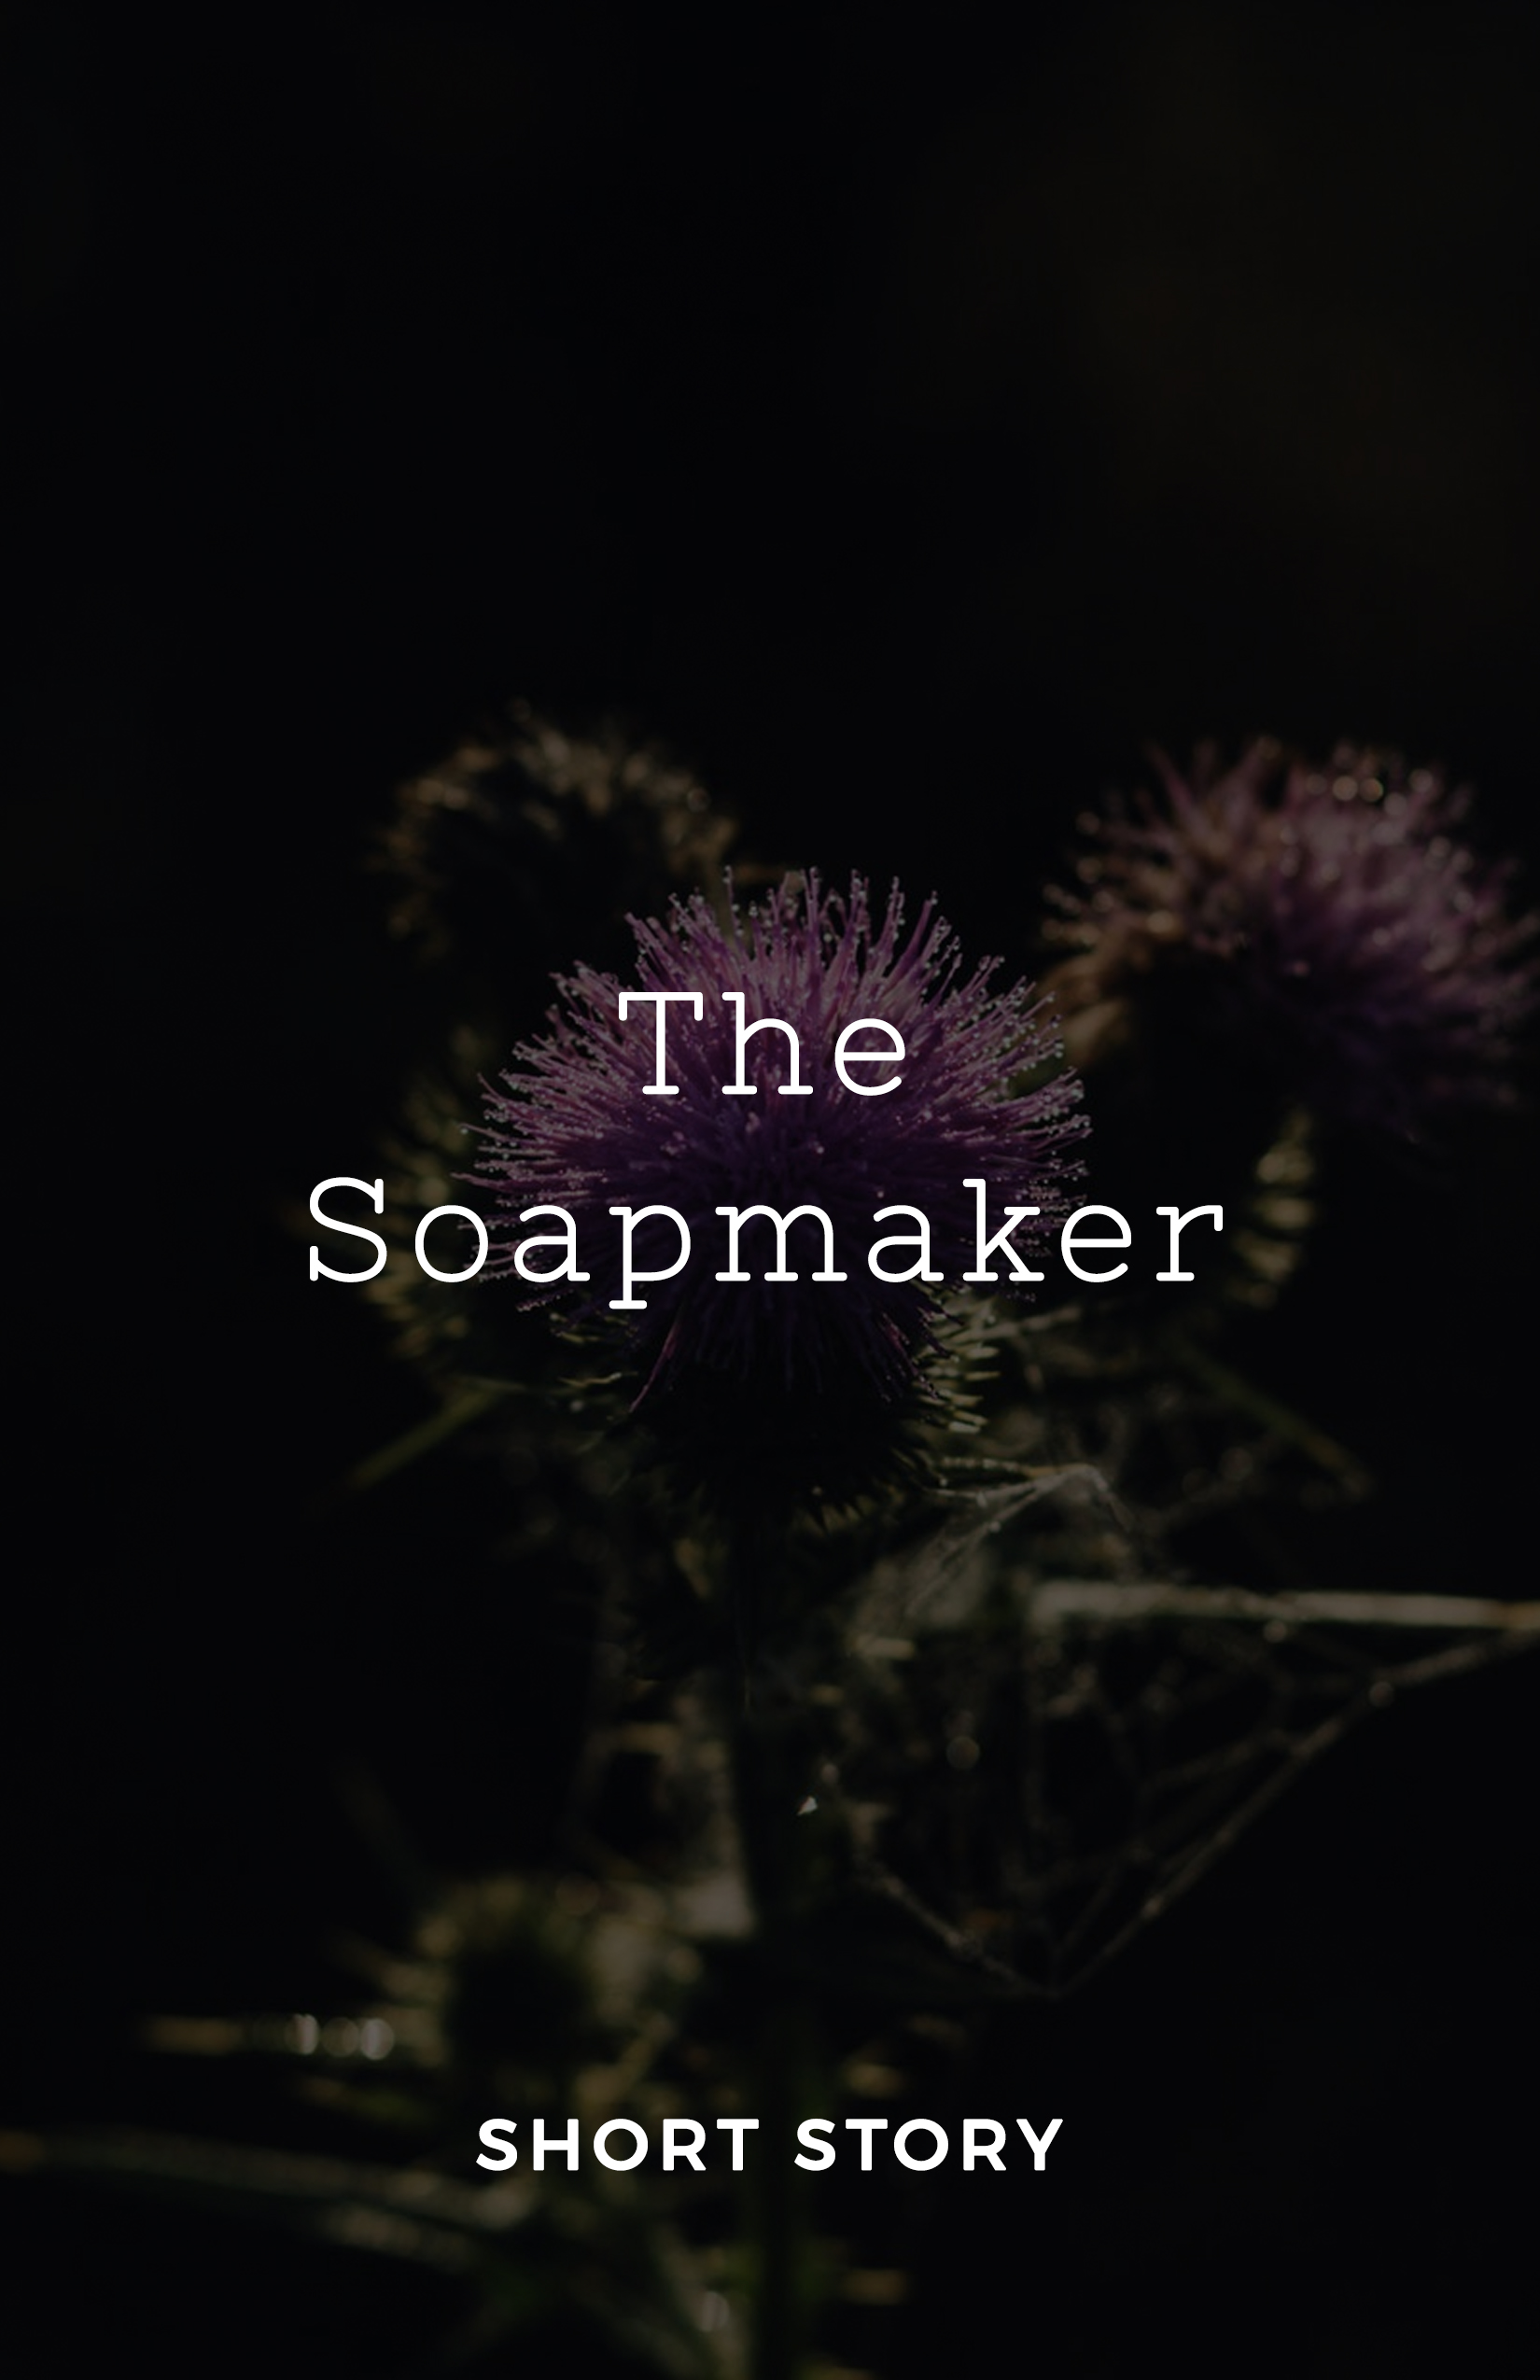 thesoapmaker.jpg